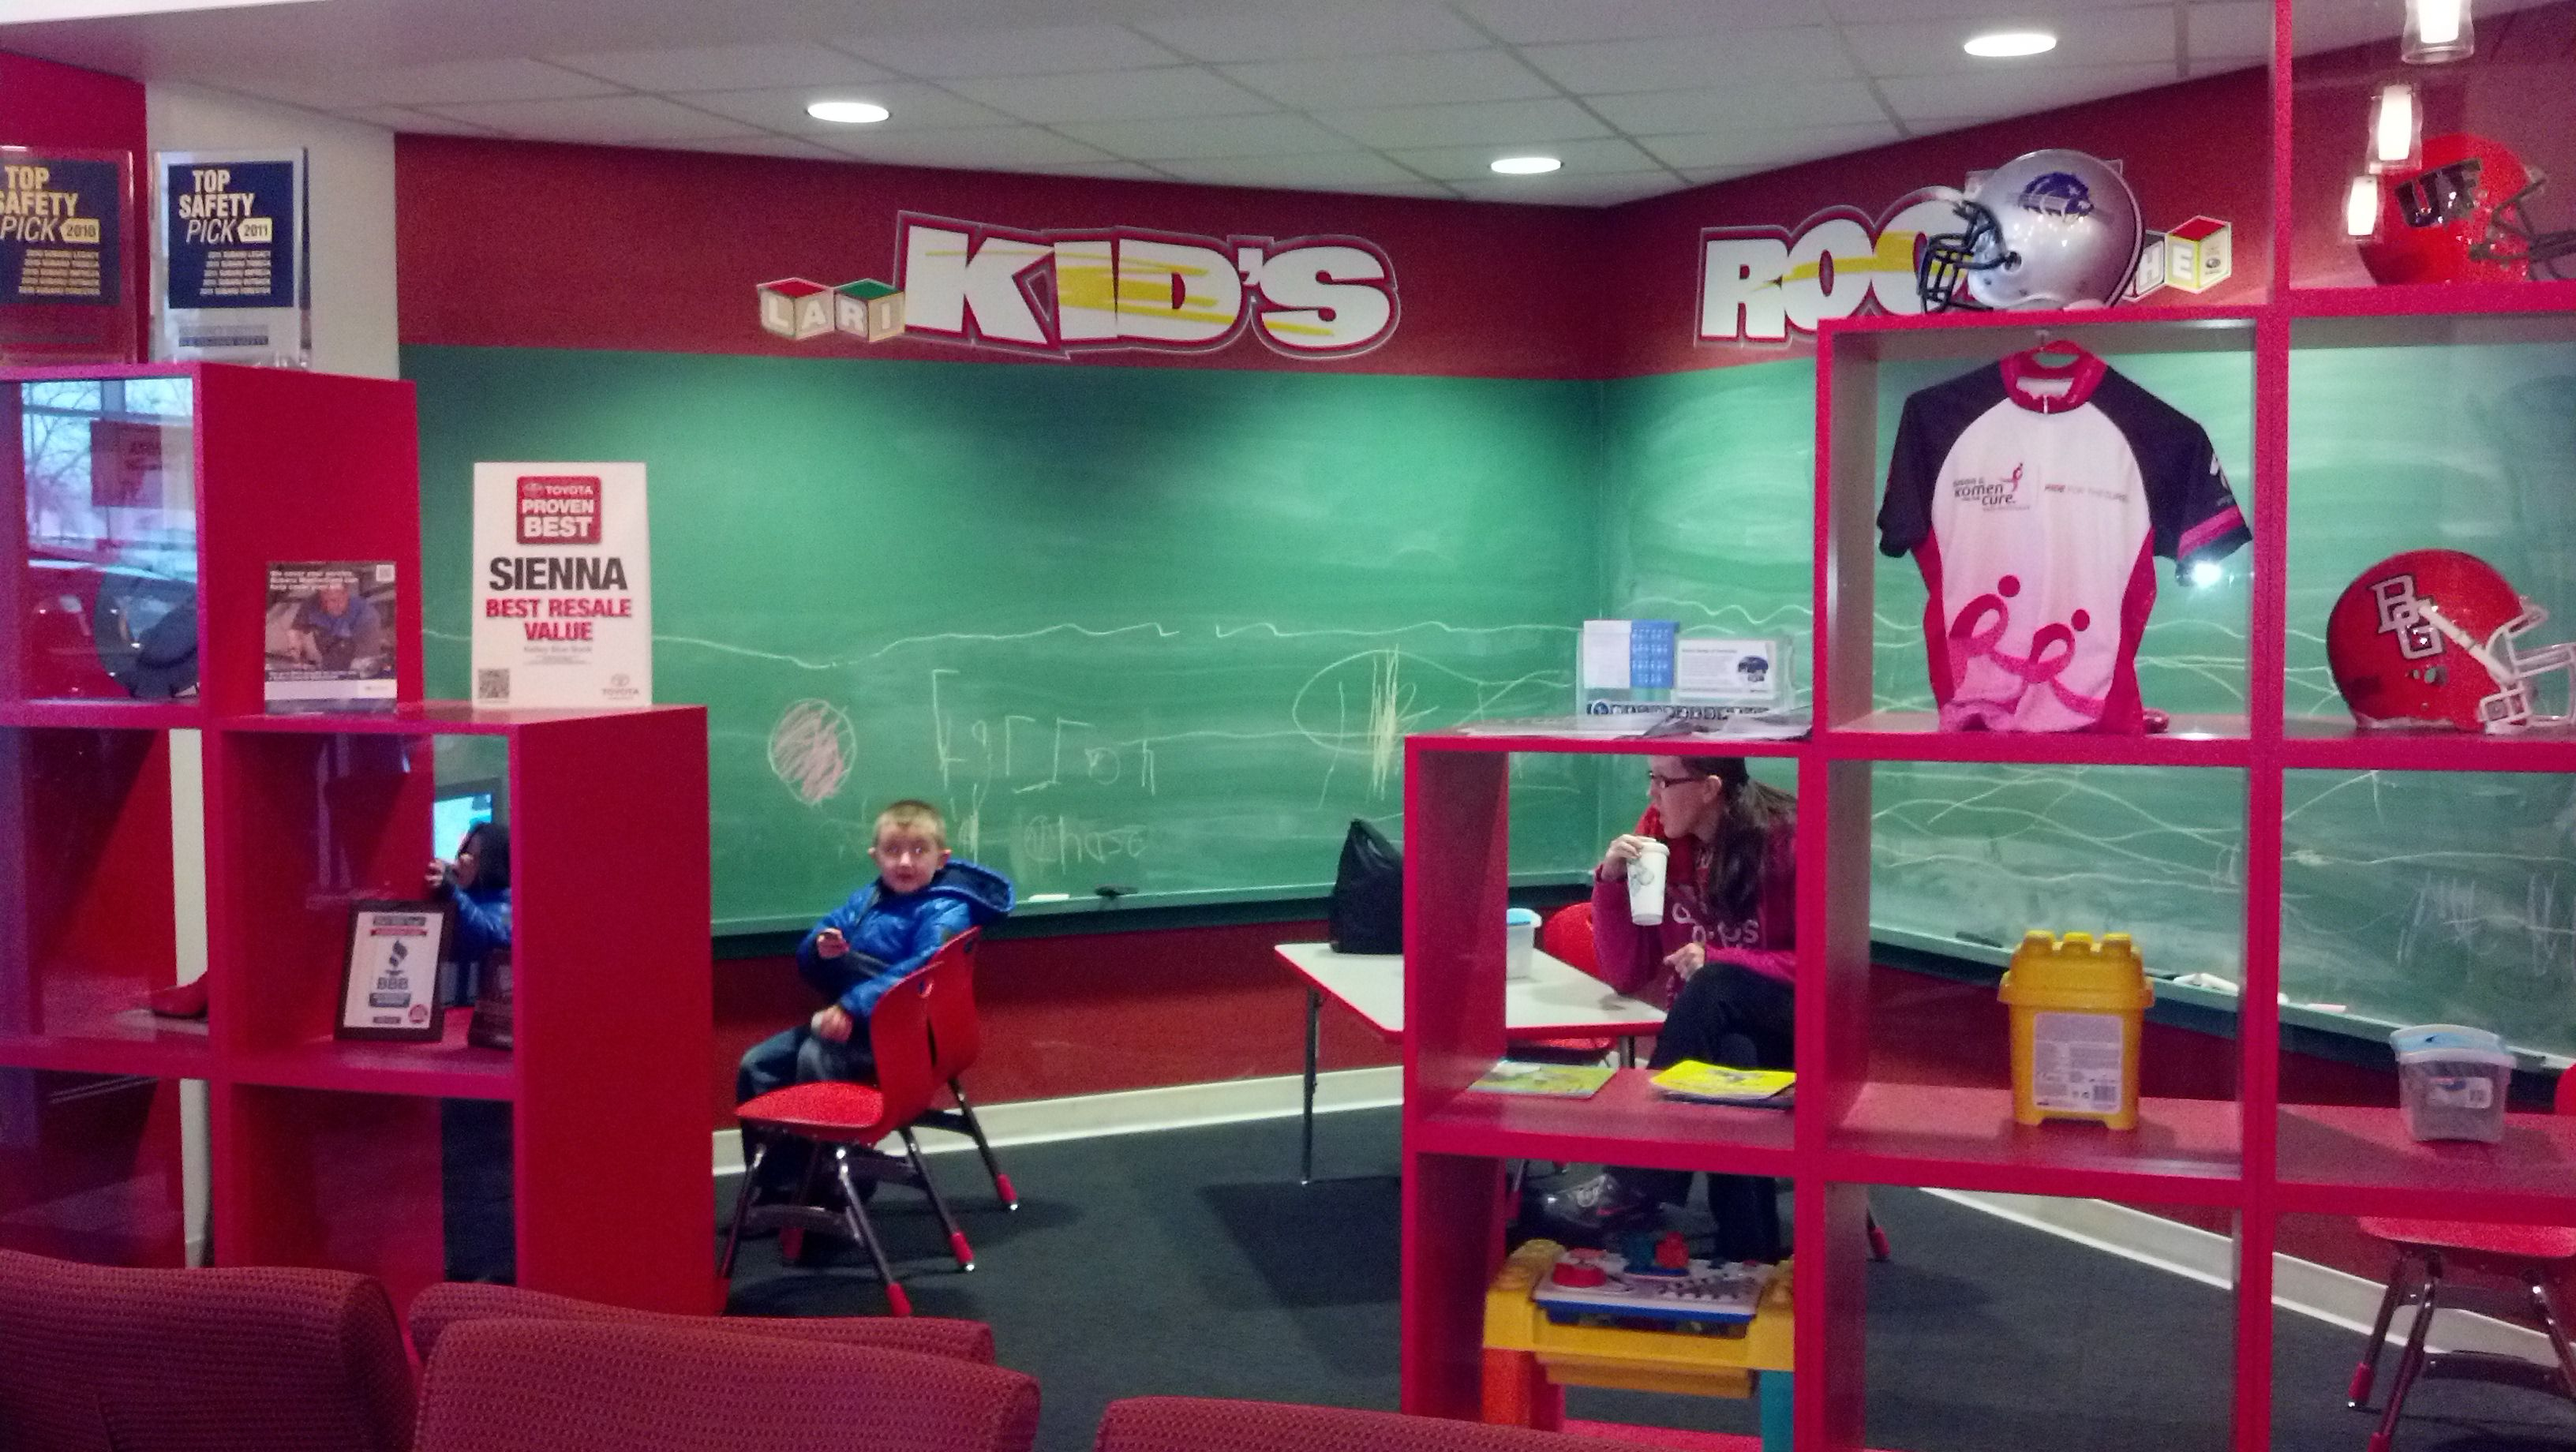 All ages of kids enjoy our well equipped KIDS ROOM. Chalk